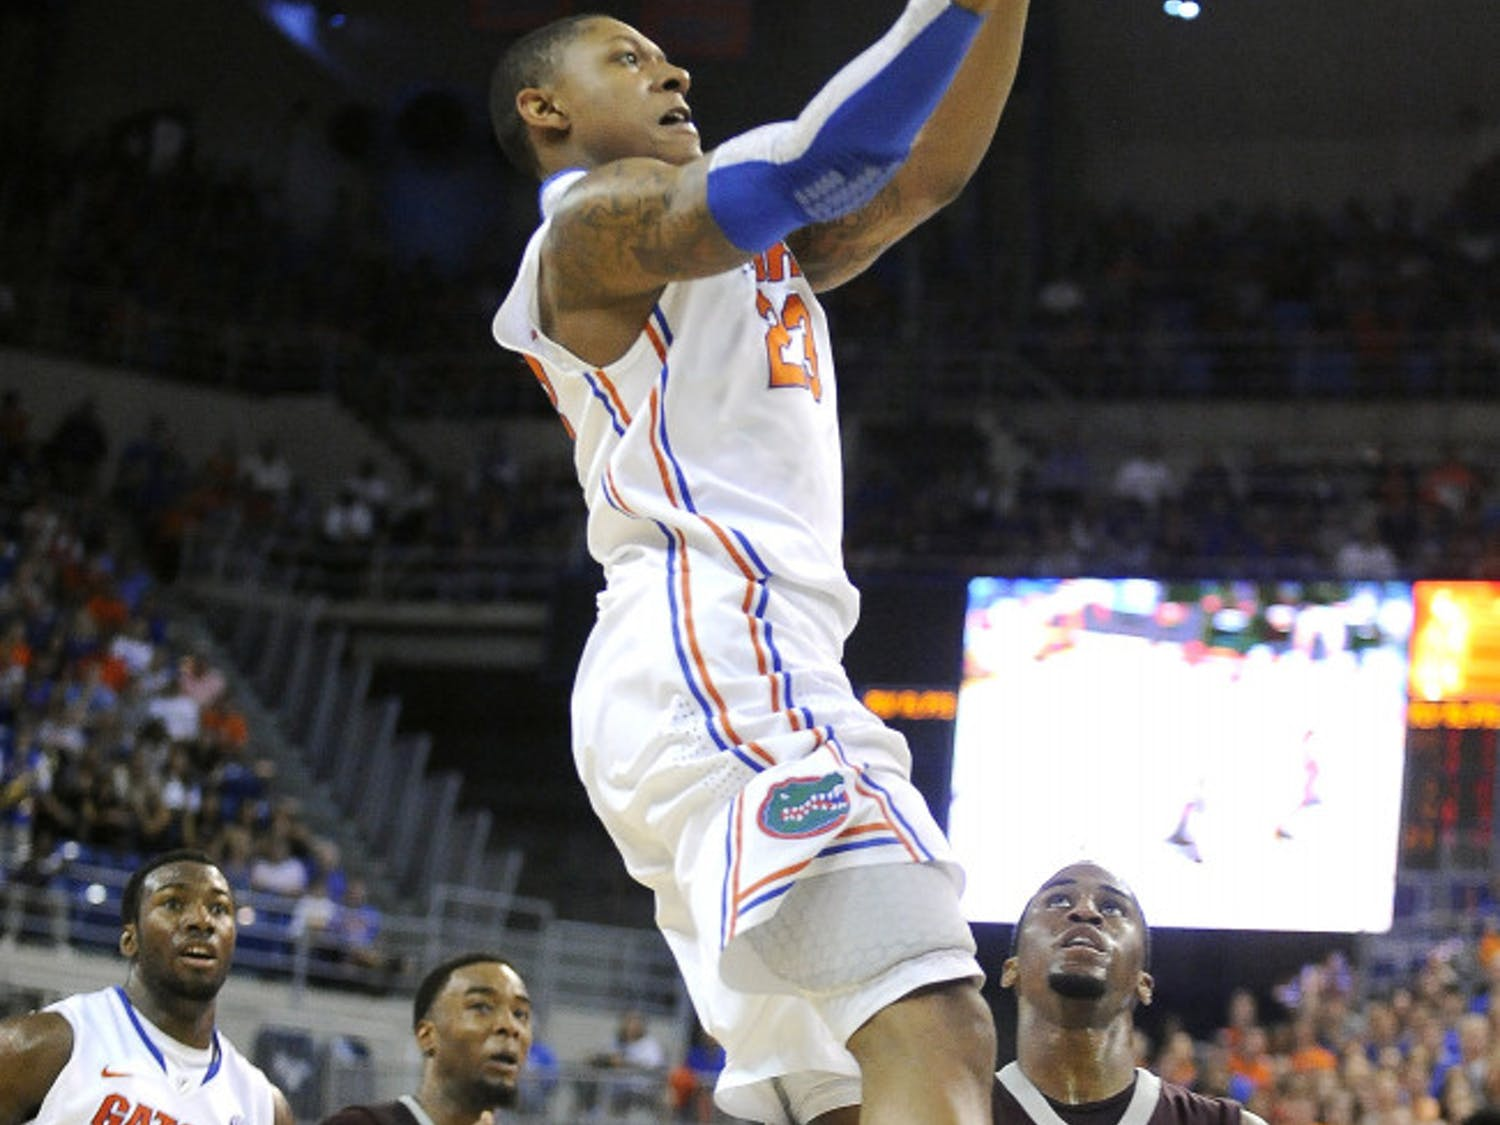 Florida guard Brad Beal declared for the NBA Draft on Monday after a stellar freshman campaign in which he led the Gators in minutes played and rebounding. Beal is projected to be a lottery pick in the June 28 draft.